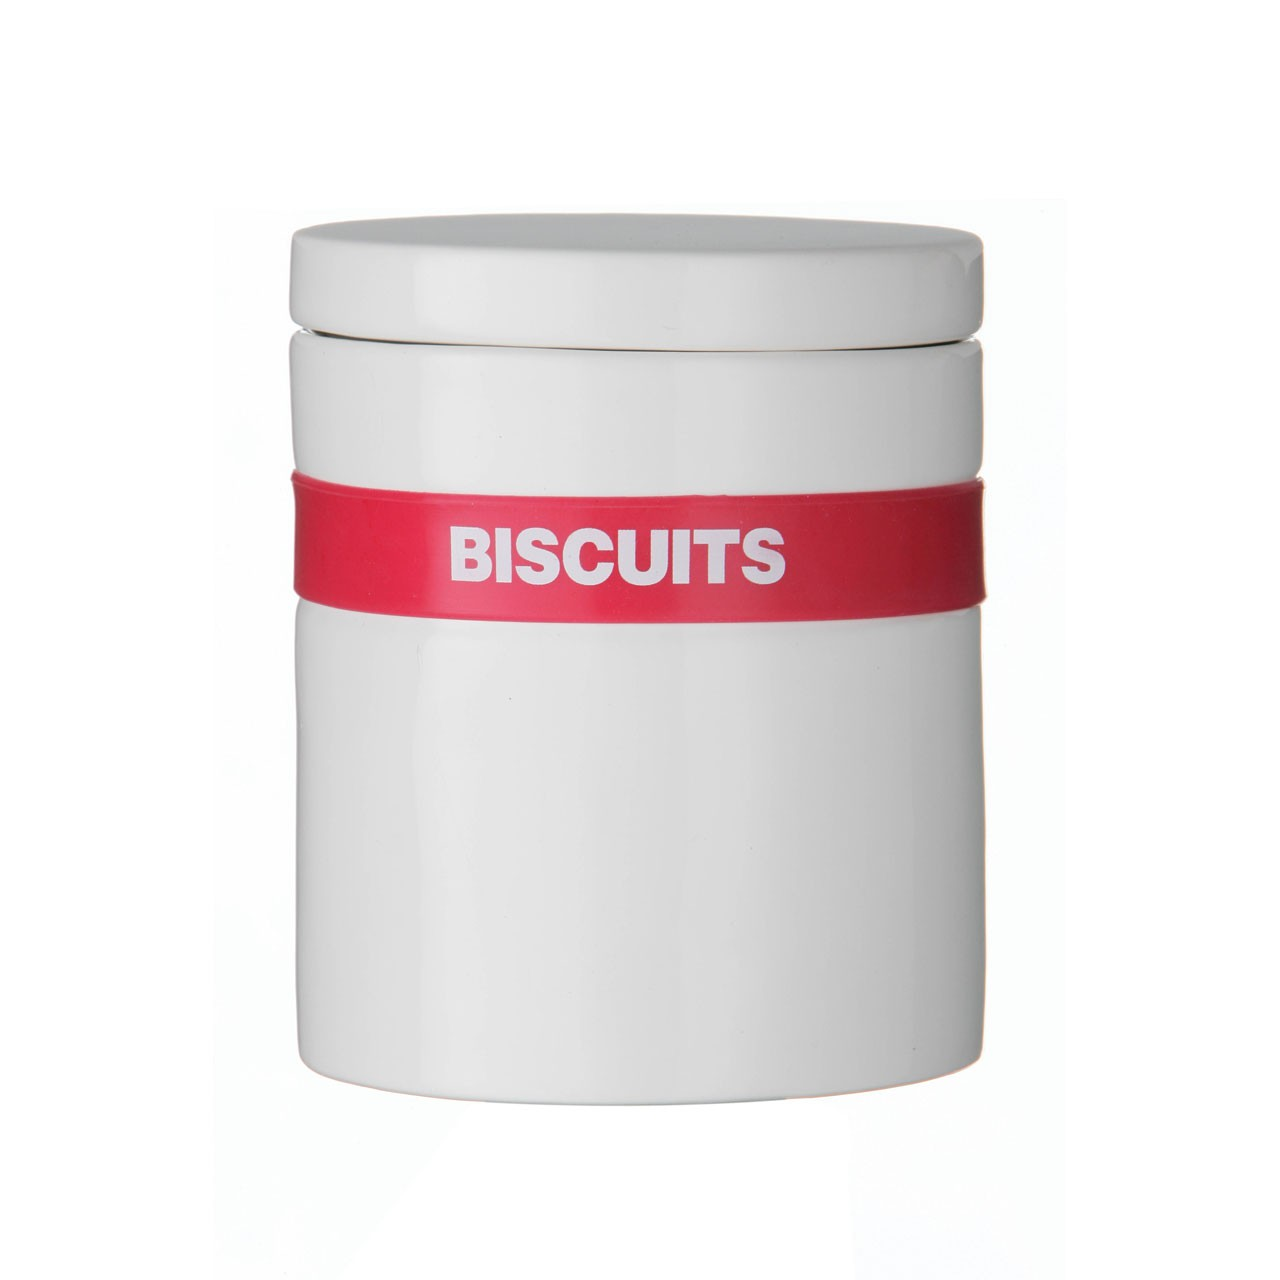 Silcone Band Biscuit Canister - Hot Pink